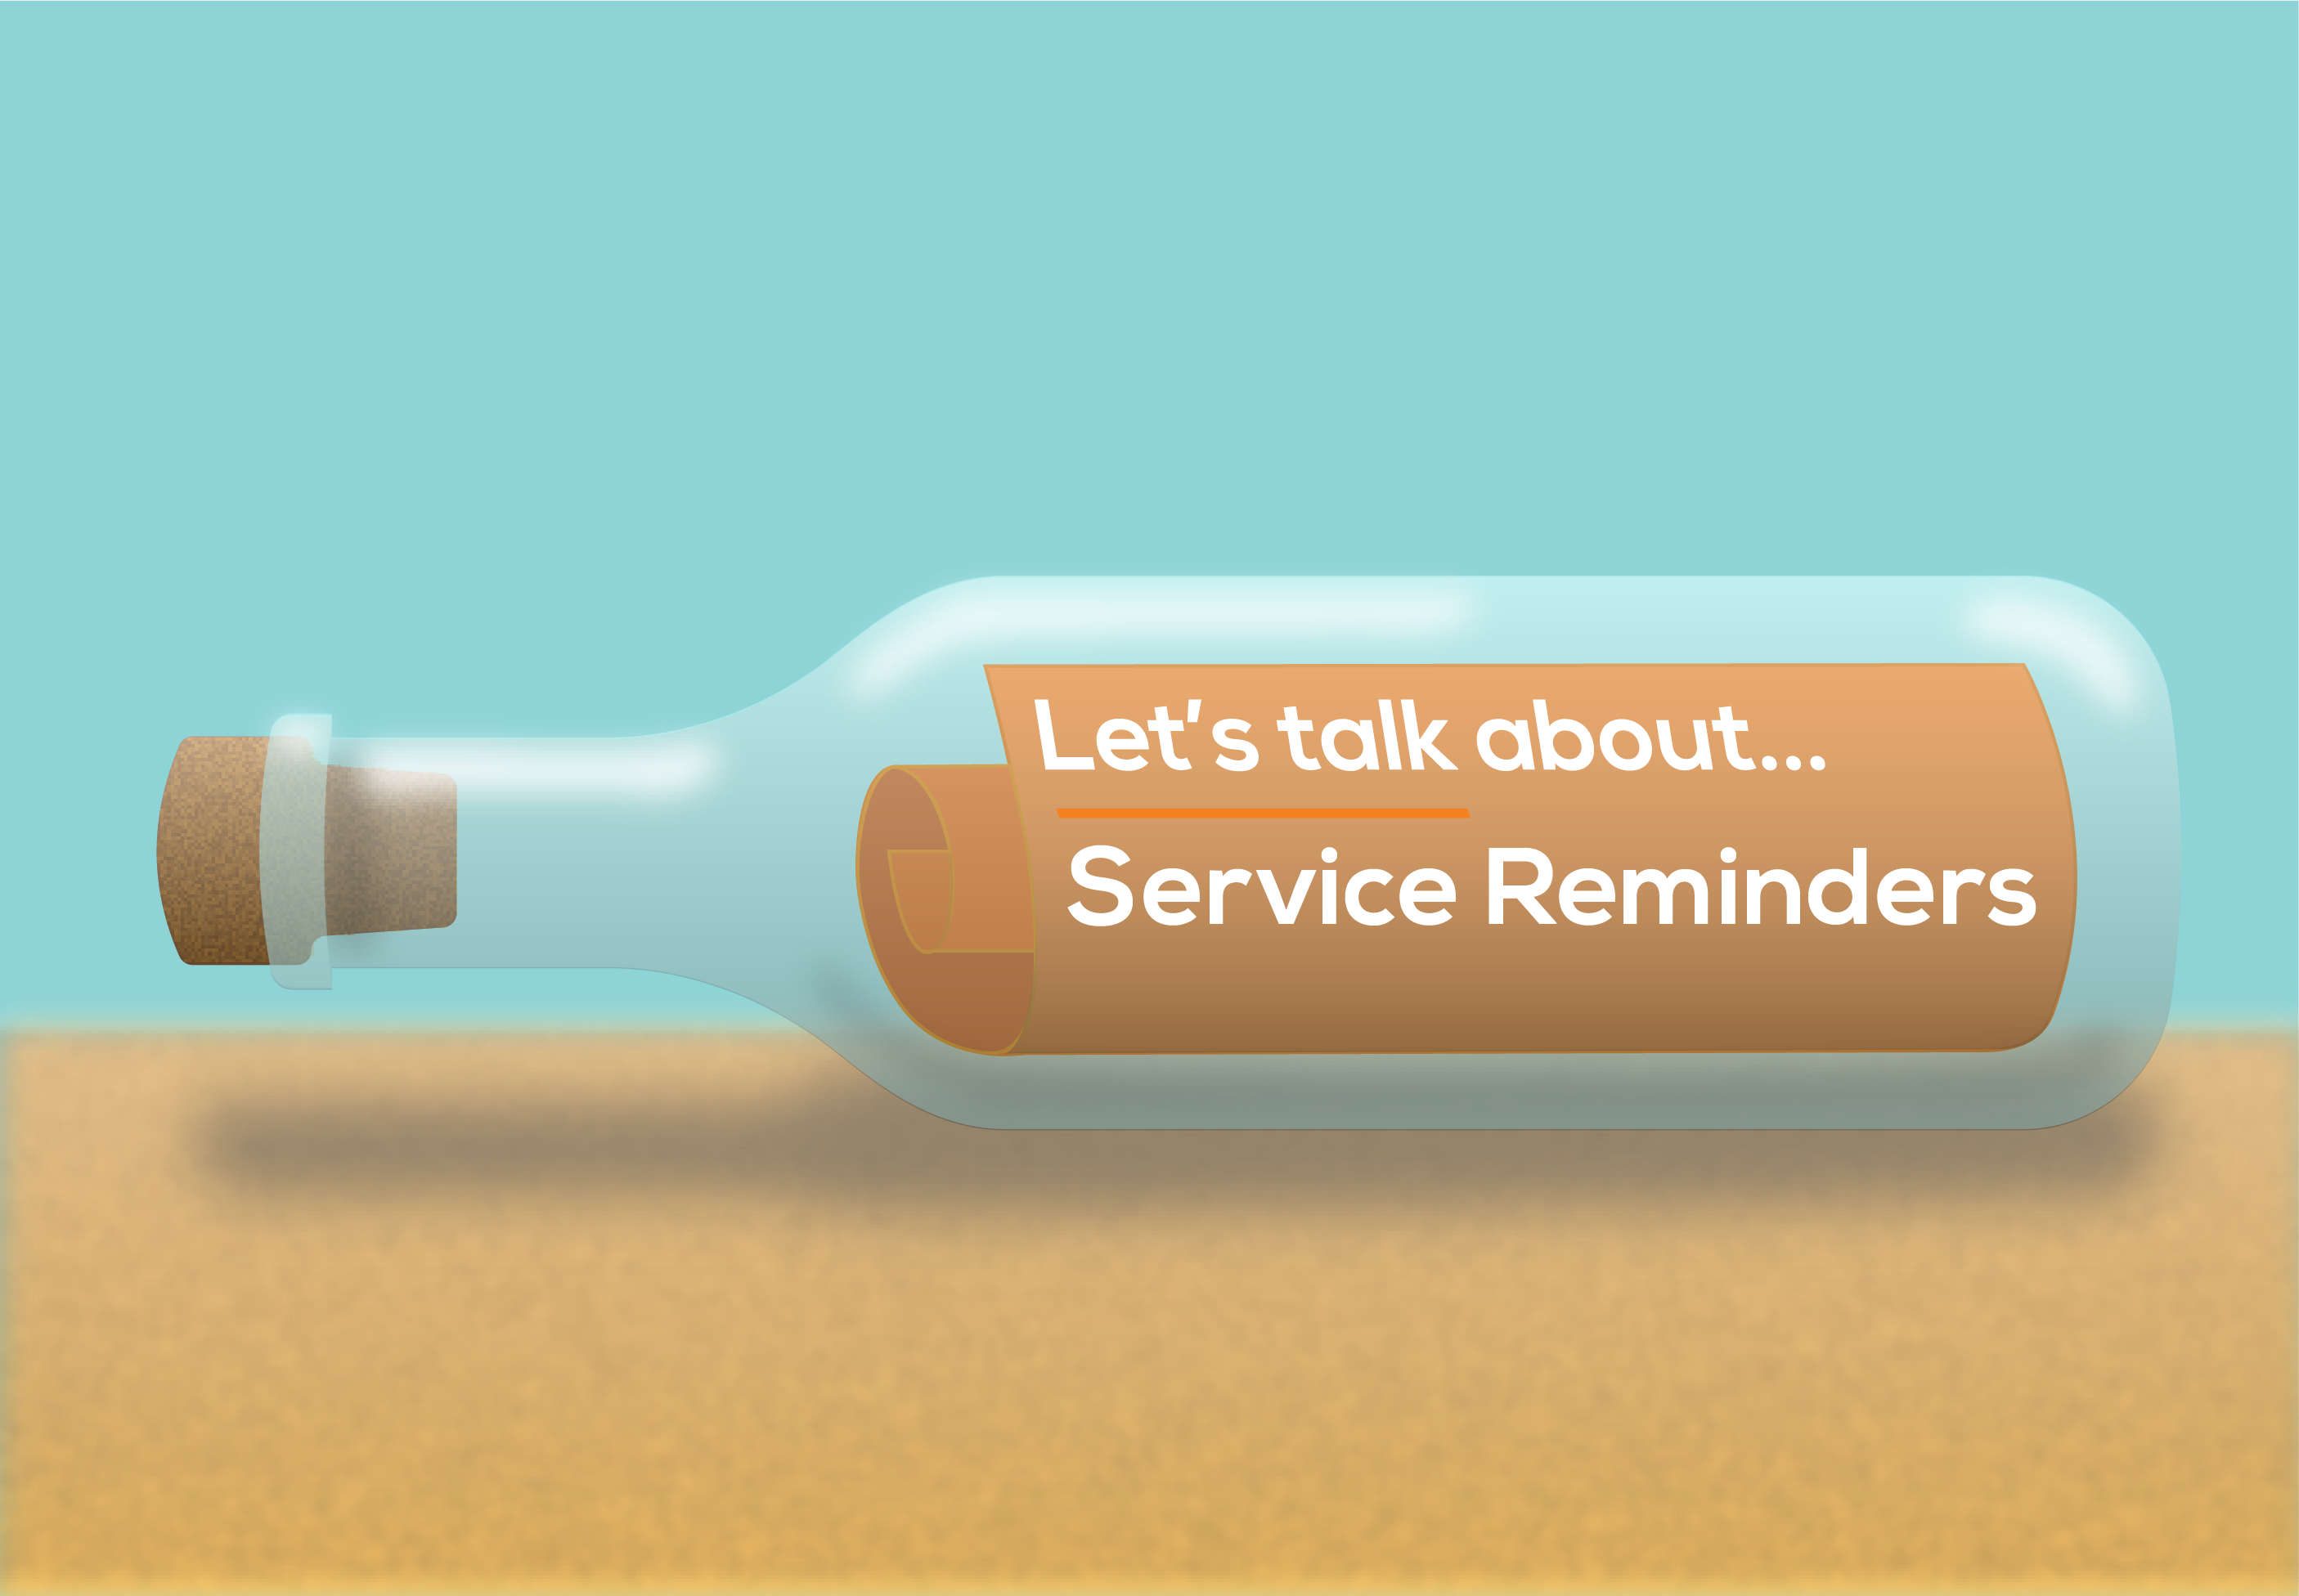 Let's Talk About... Service Reminders